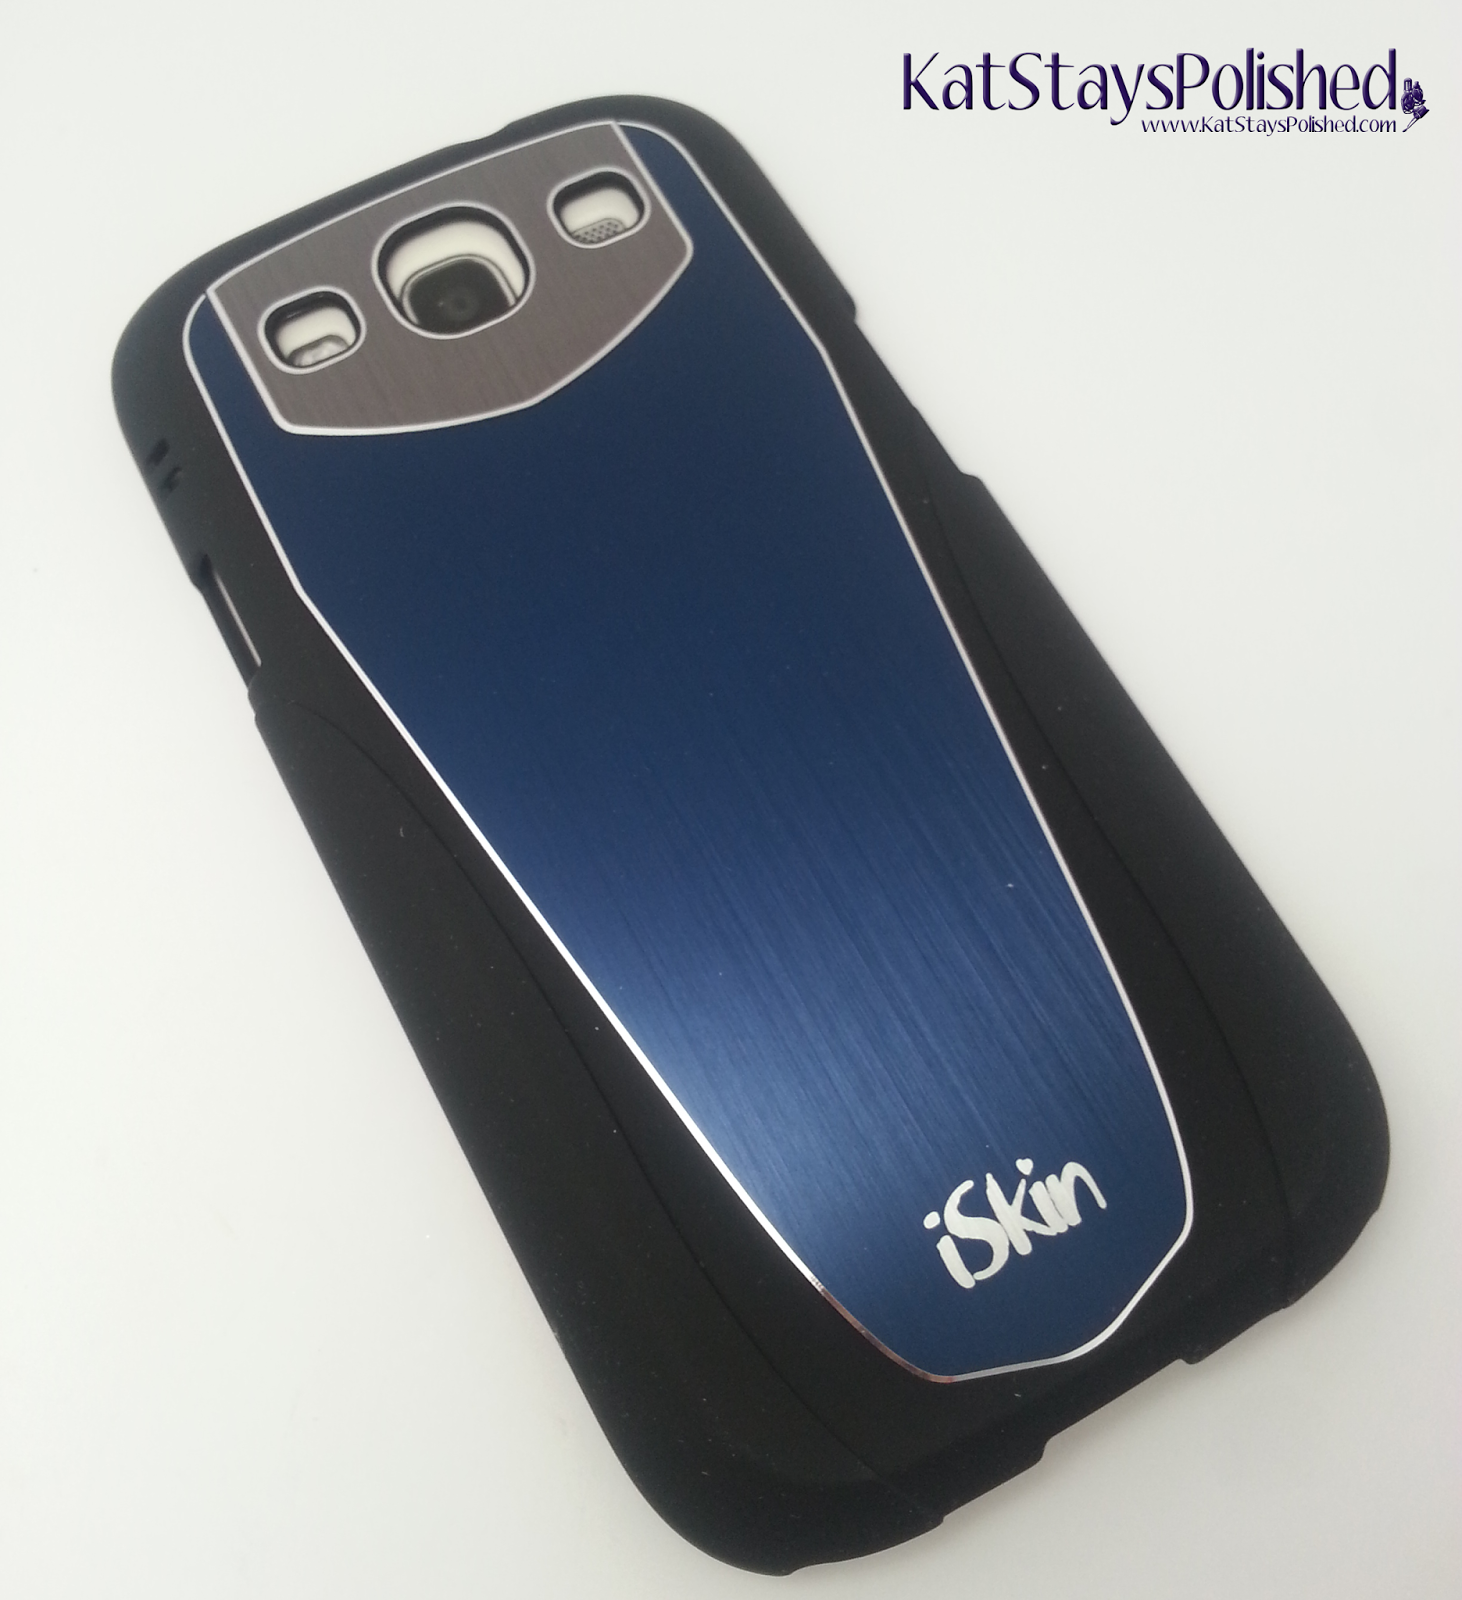 iSkin Aura Case - Samsung Galaxy S3 | Kat Stays Polished